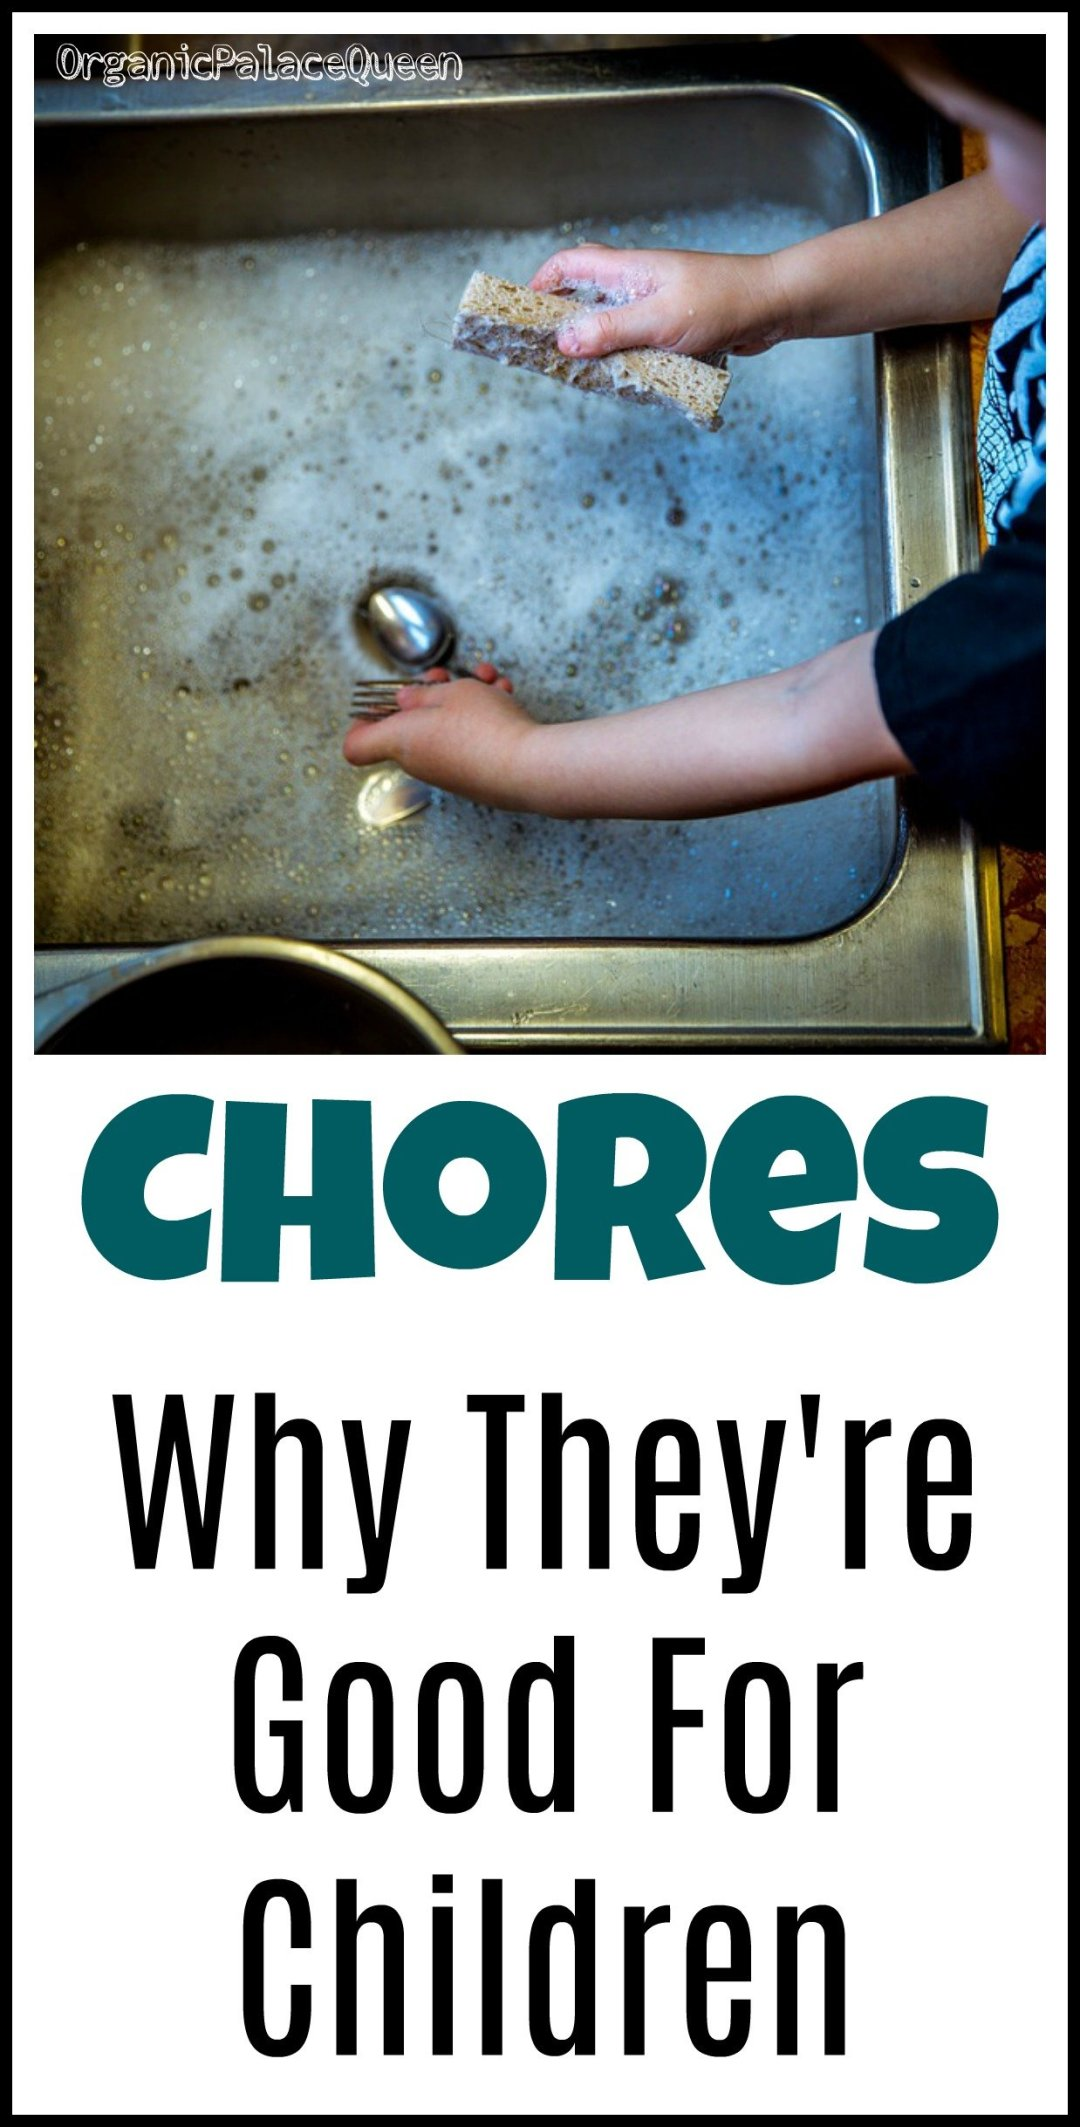 Why chores are good for children